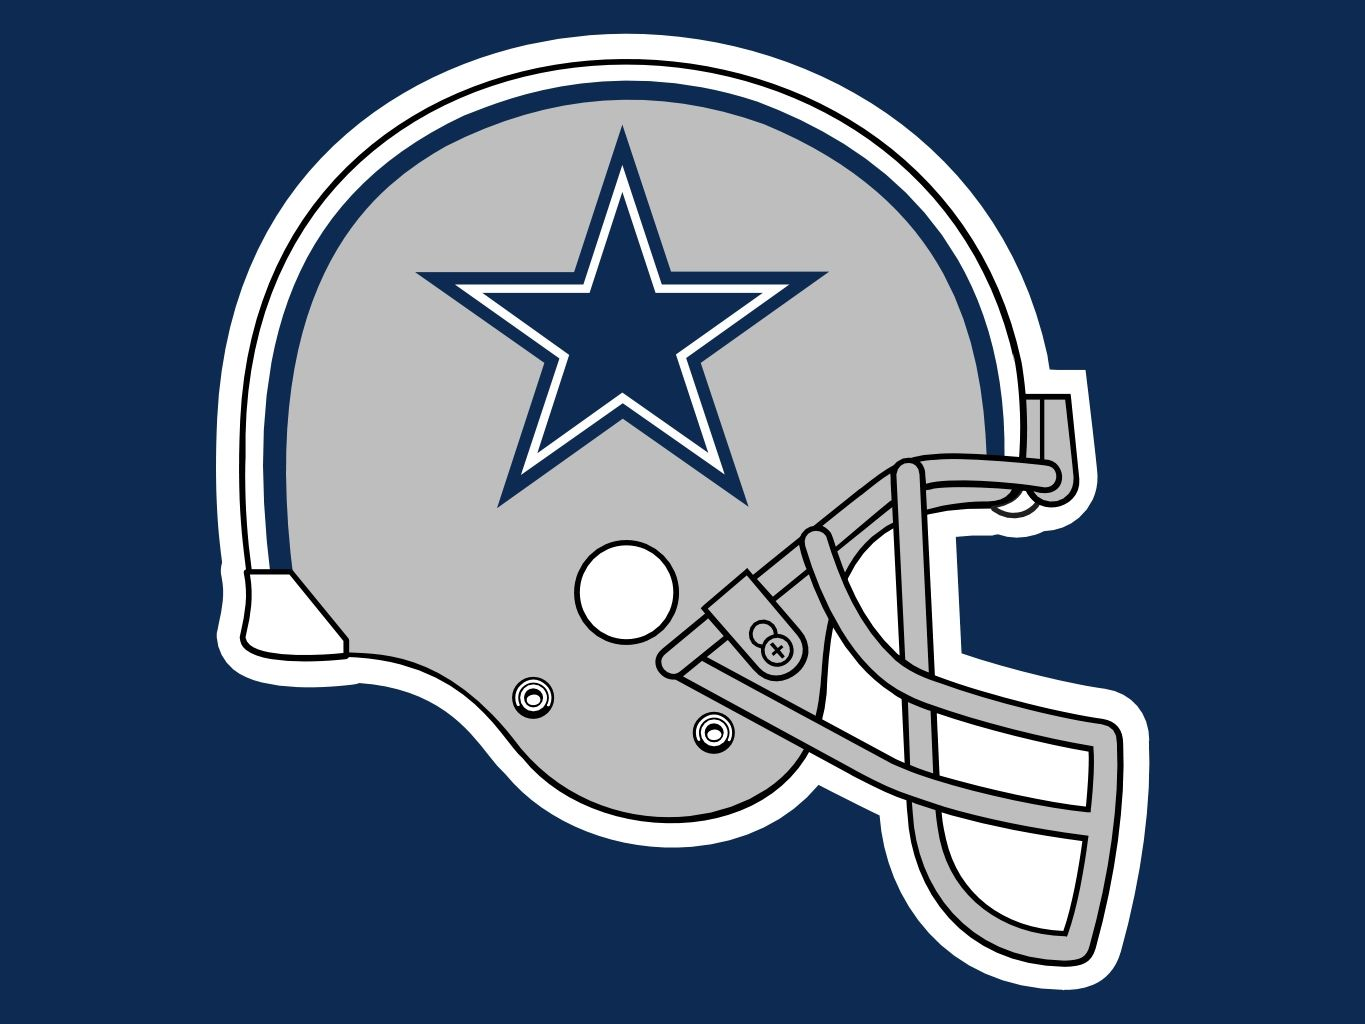 The Dallas Cowboys are a professional American football franchise ...